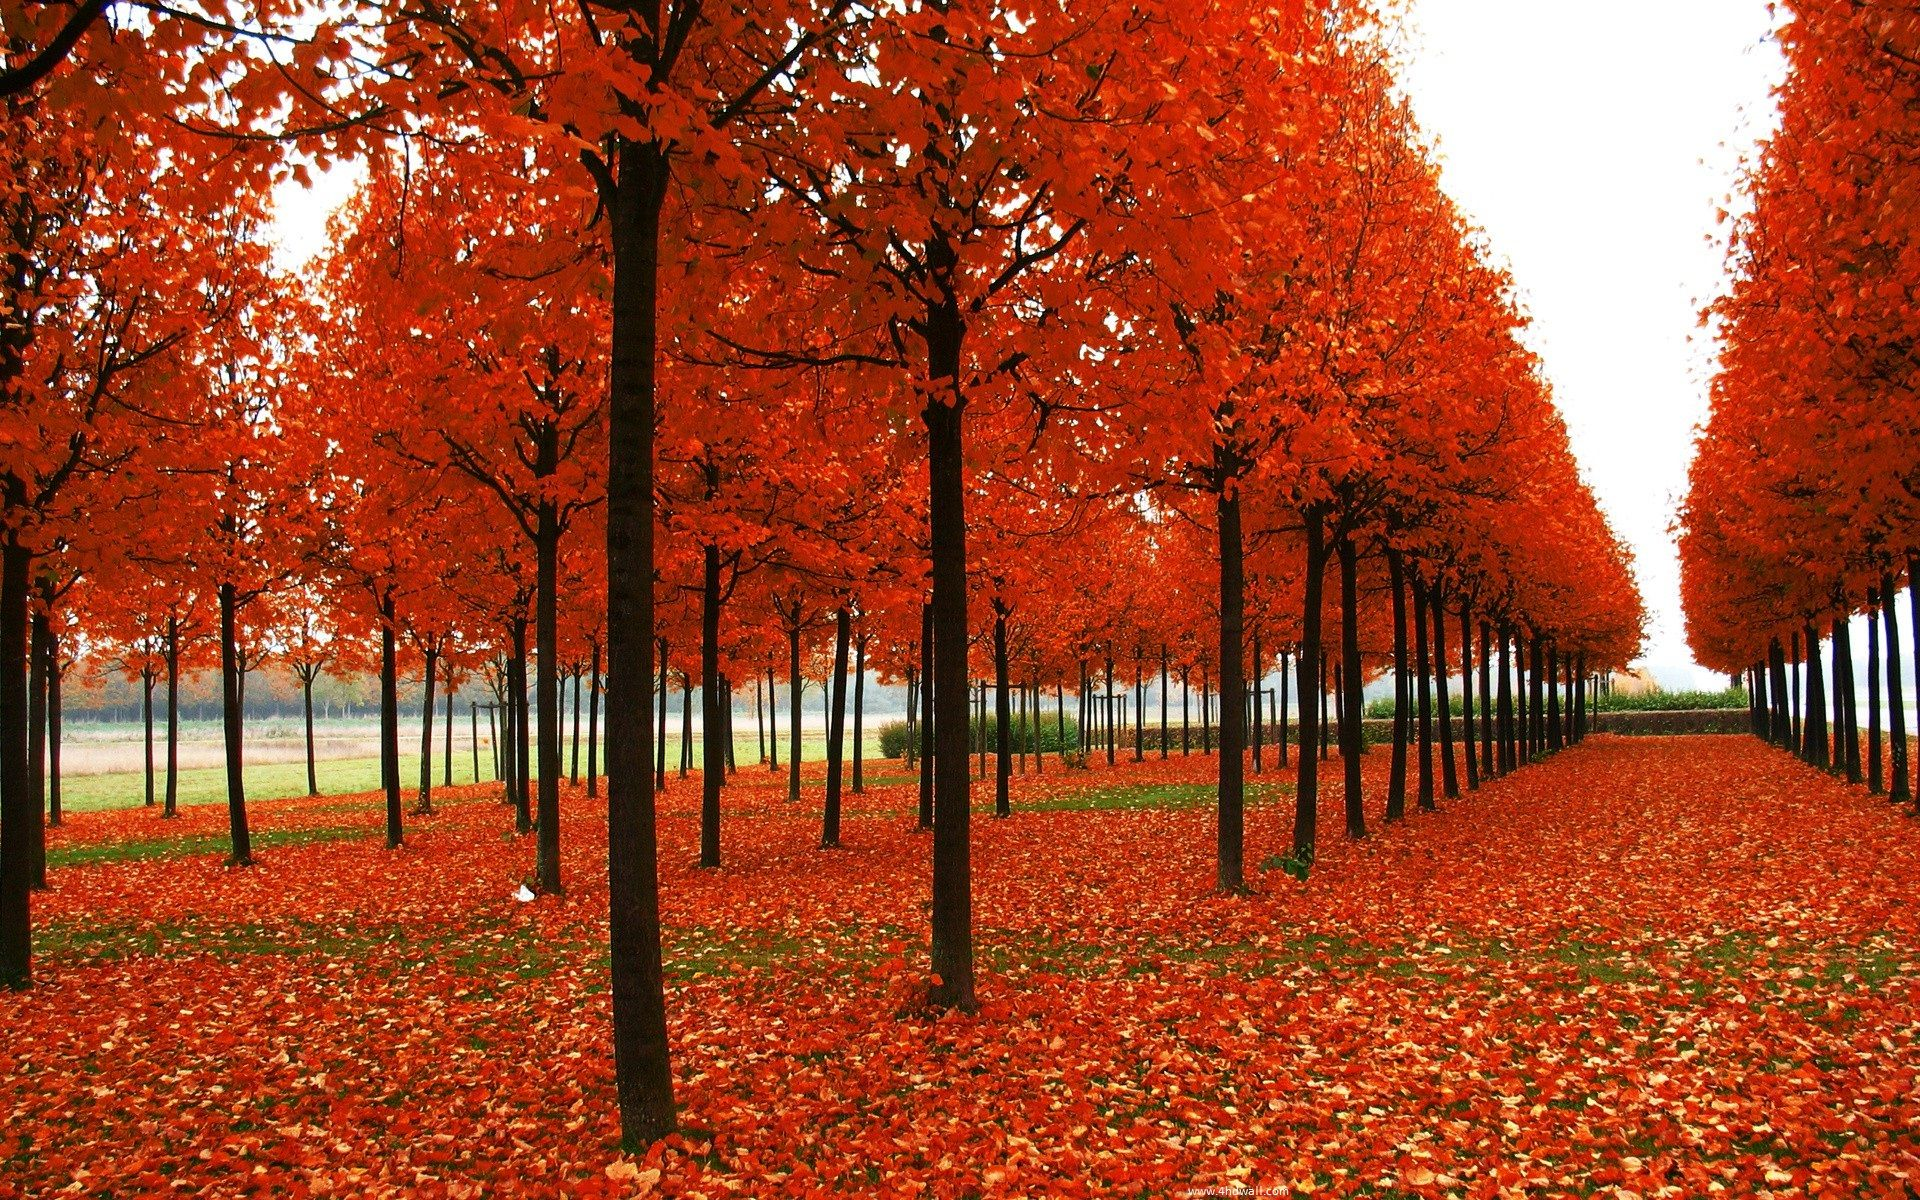 Autumn Season Hd Wallpaper, Seasons Of